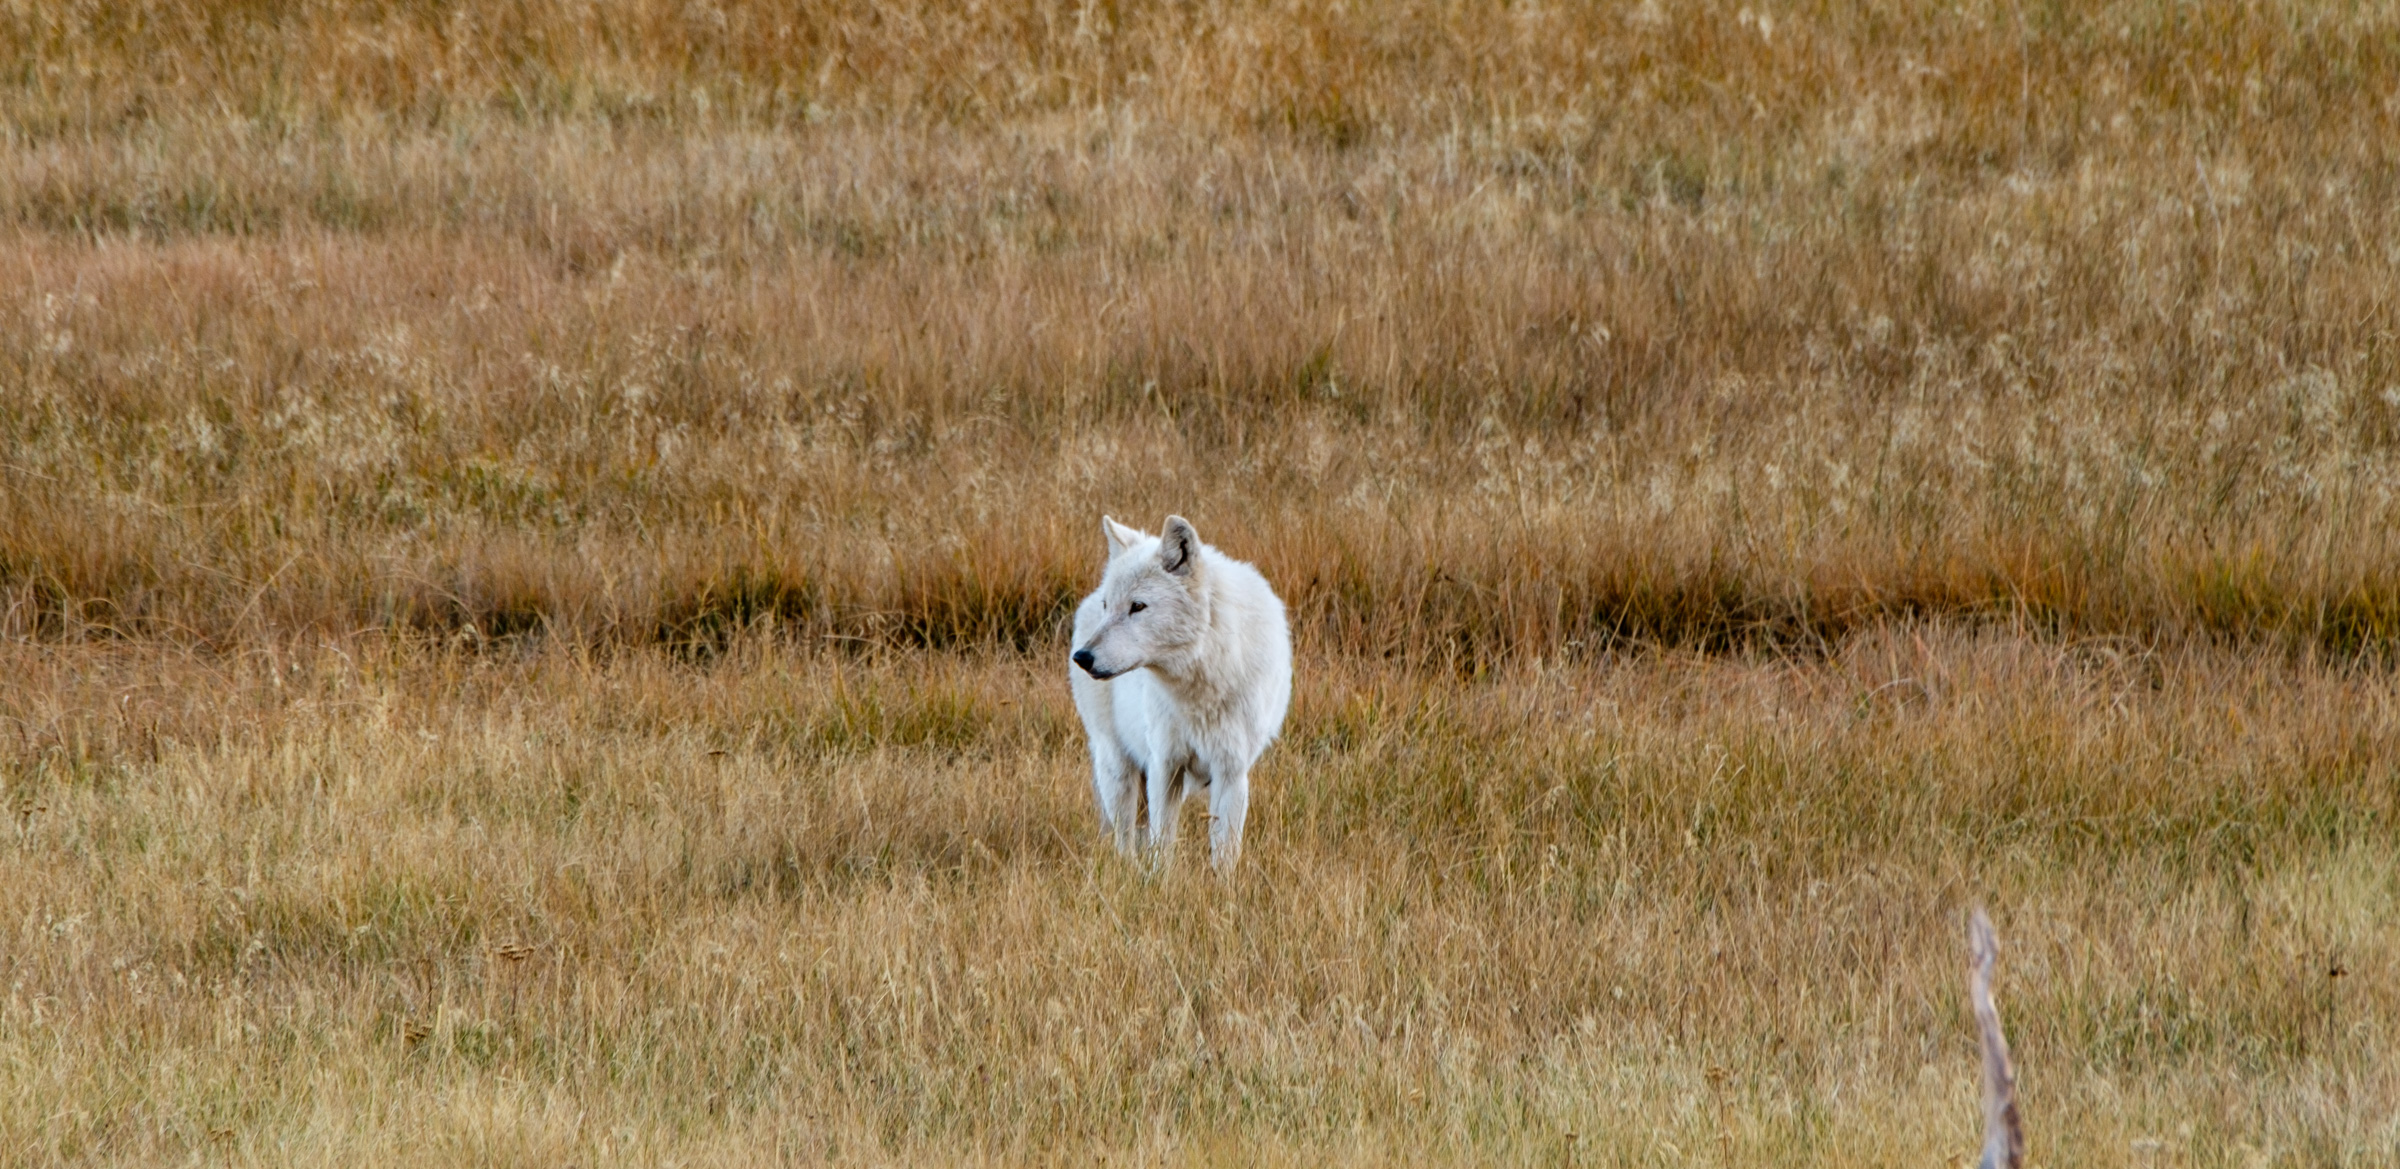 In Yellowstone, active research studies continue in an effort to prolong the livelihood of the endangered Rocky Mountain wolf that calls Yellowstone home. We caught a glimpse of one, as is pictured here, in autumn of 2016.